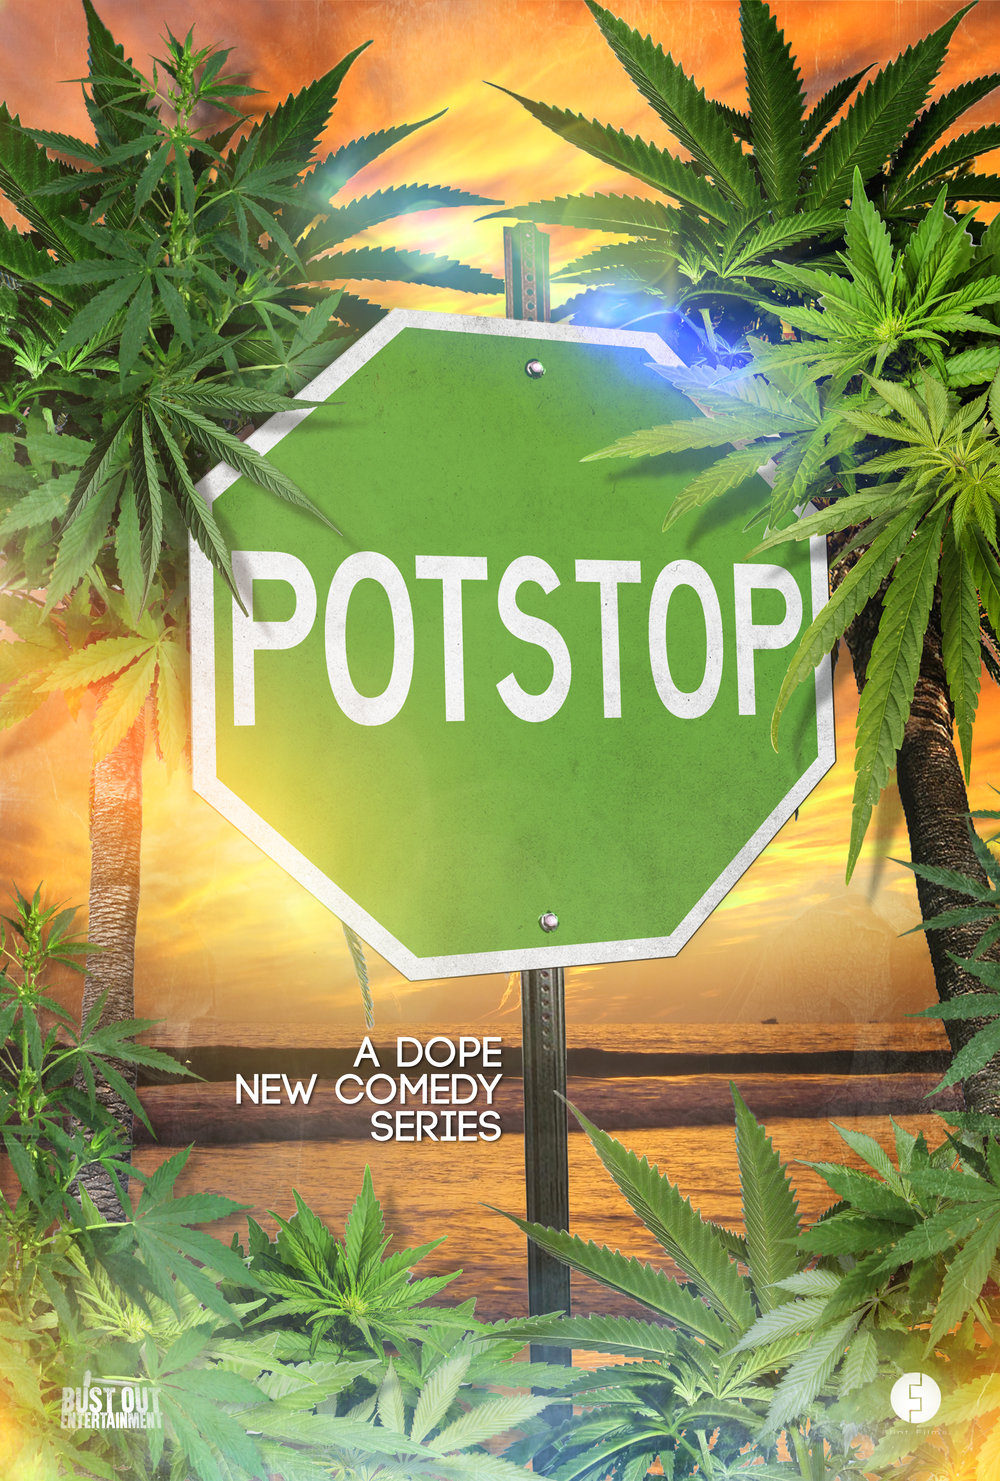 POTSTOP KEY ART WEED PALM TREES.jpg